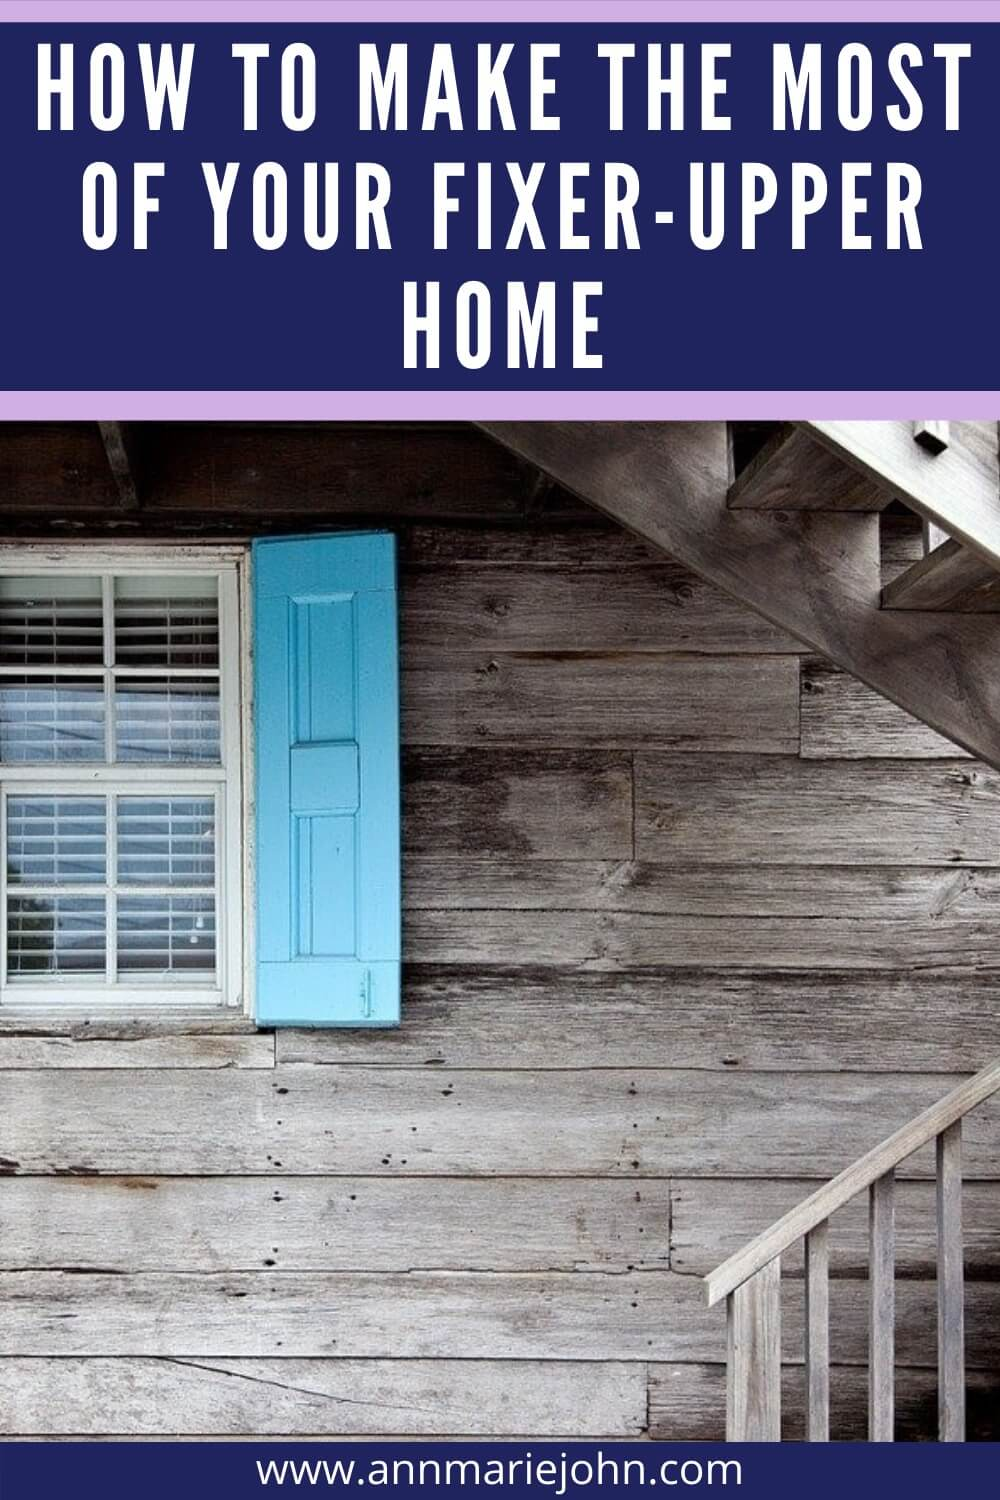 How to Make the Most of Your Fixer-Upper Home